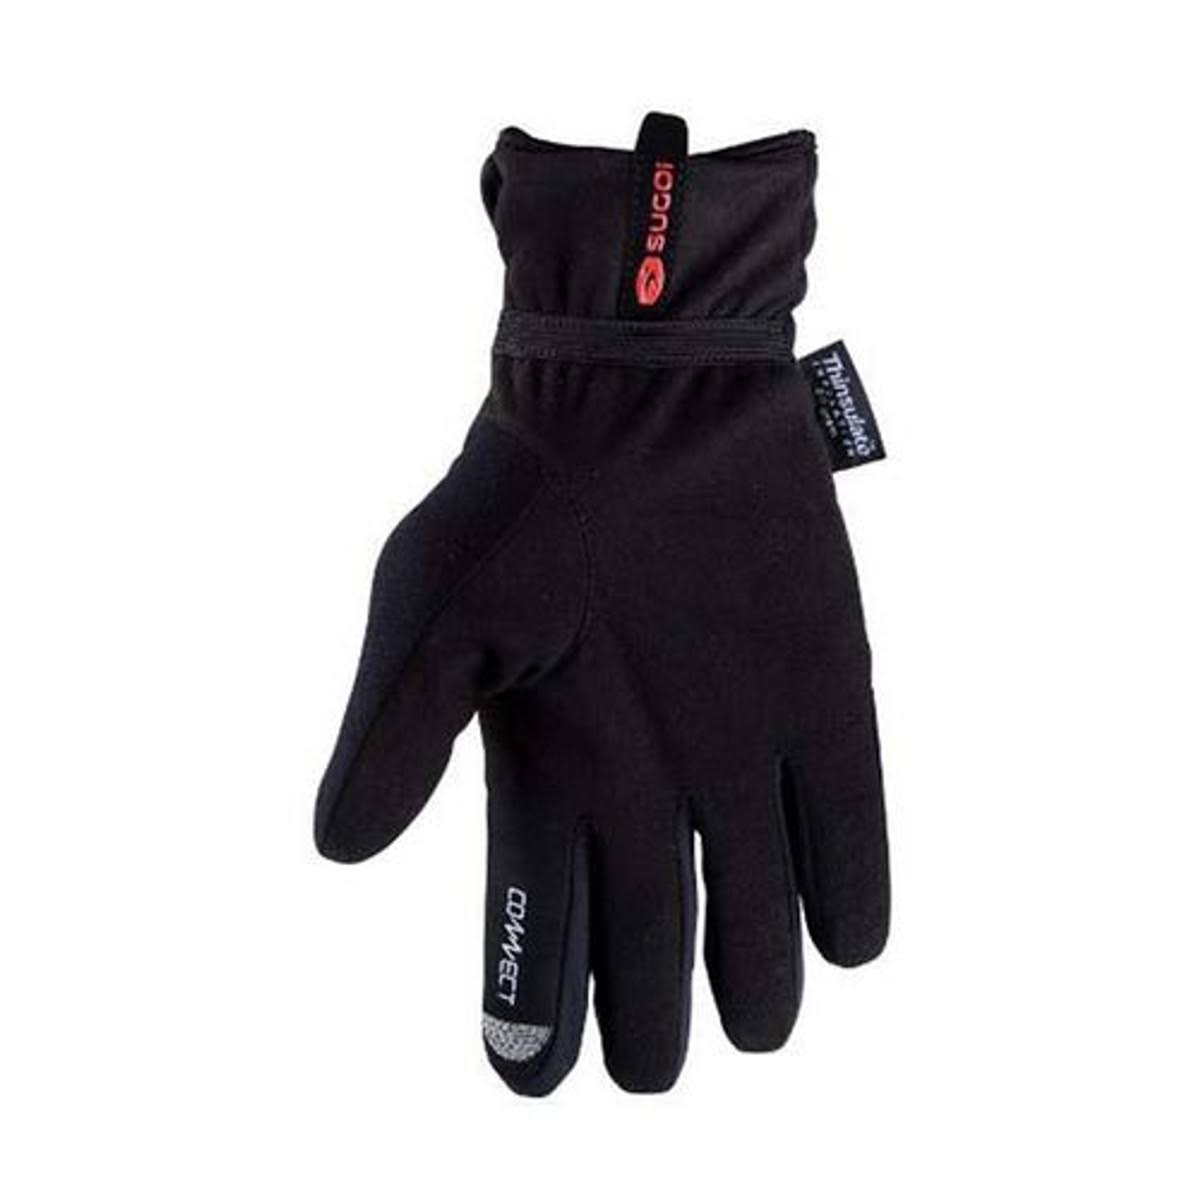 Sugoi RSR Zero Thermal Full Finger Running Gloves - Black, X-Small